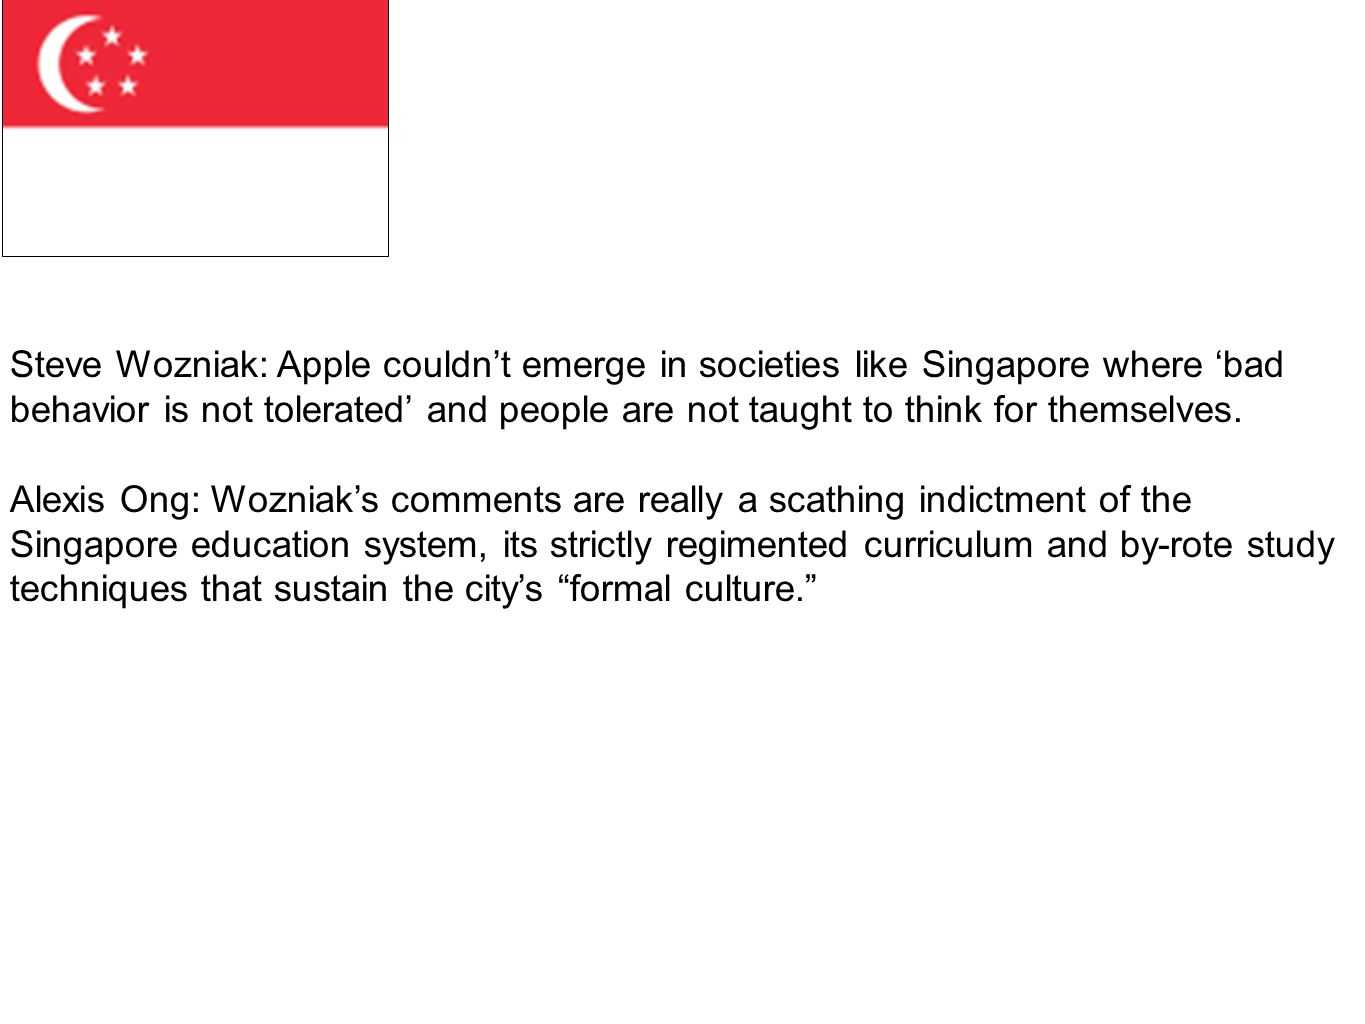 Steve Wozniak: Apple couldnt emerge in societies like Singapore where bad behavior is not tolerated and people are not taught to think for themselves.